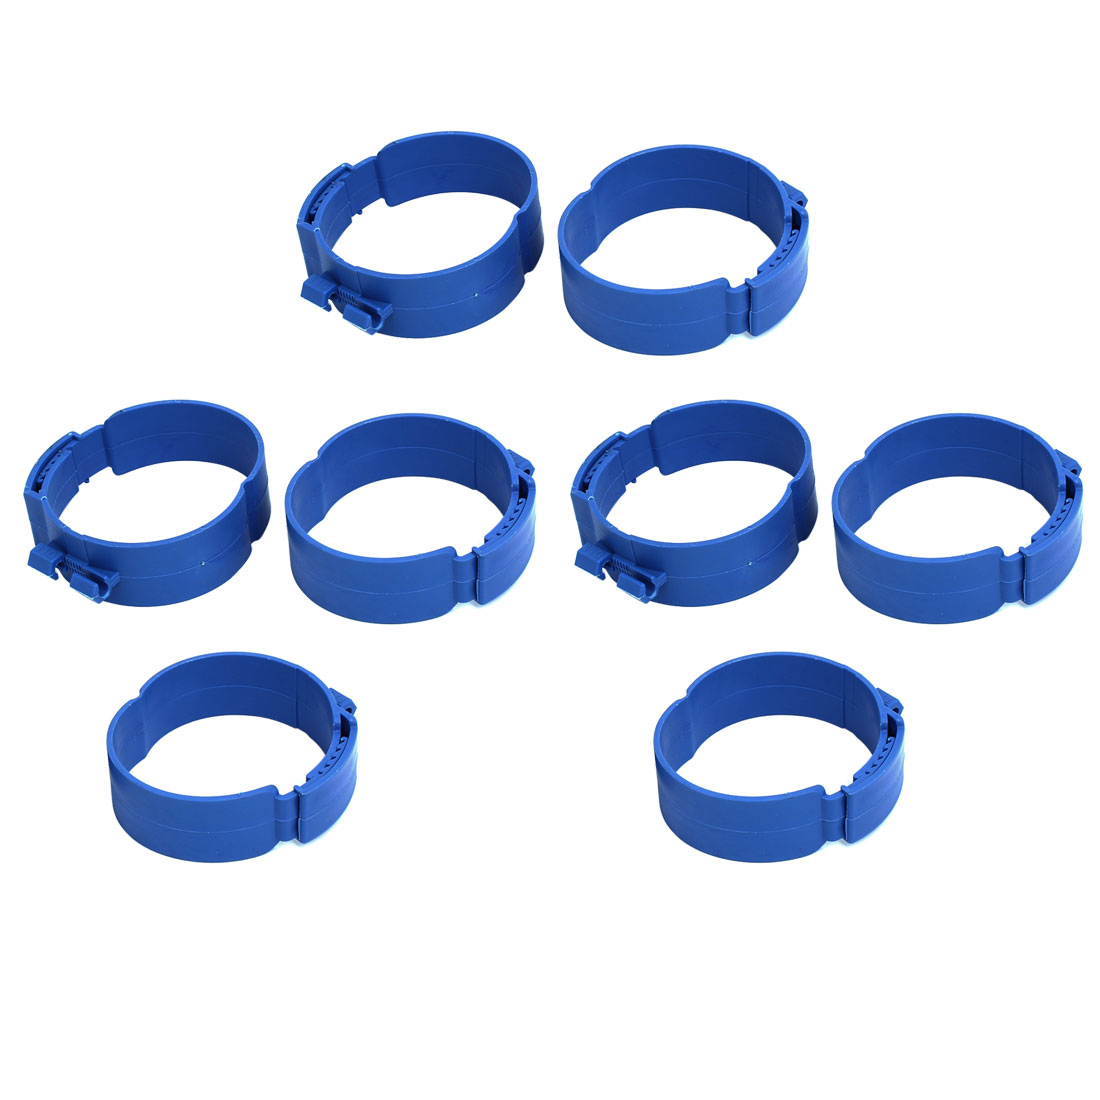 110mm Dia 38mm Width Central Air Conditioner Pipe Clip Clamp Blue 8pcs